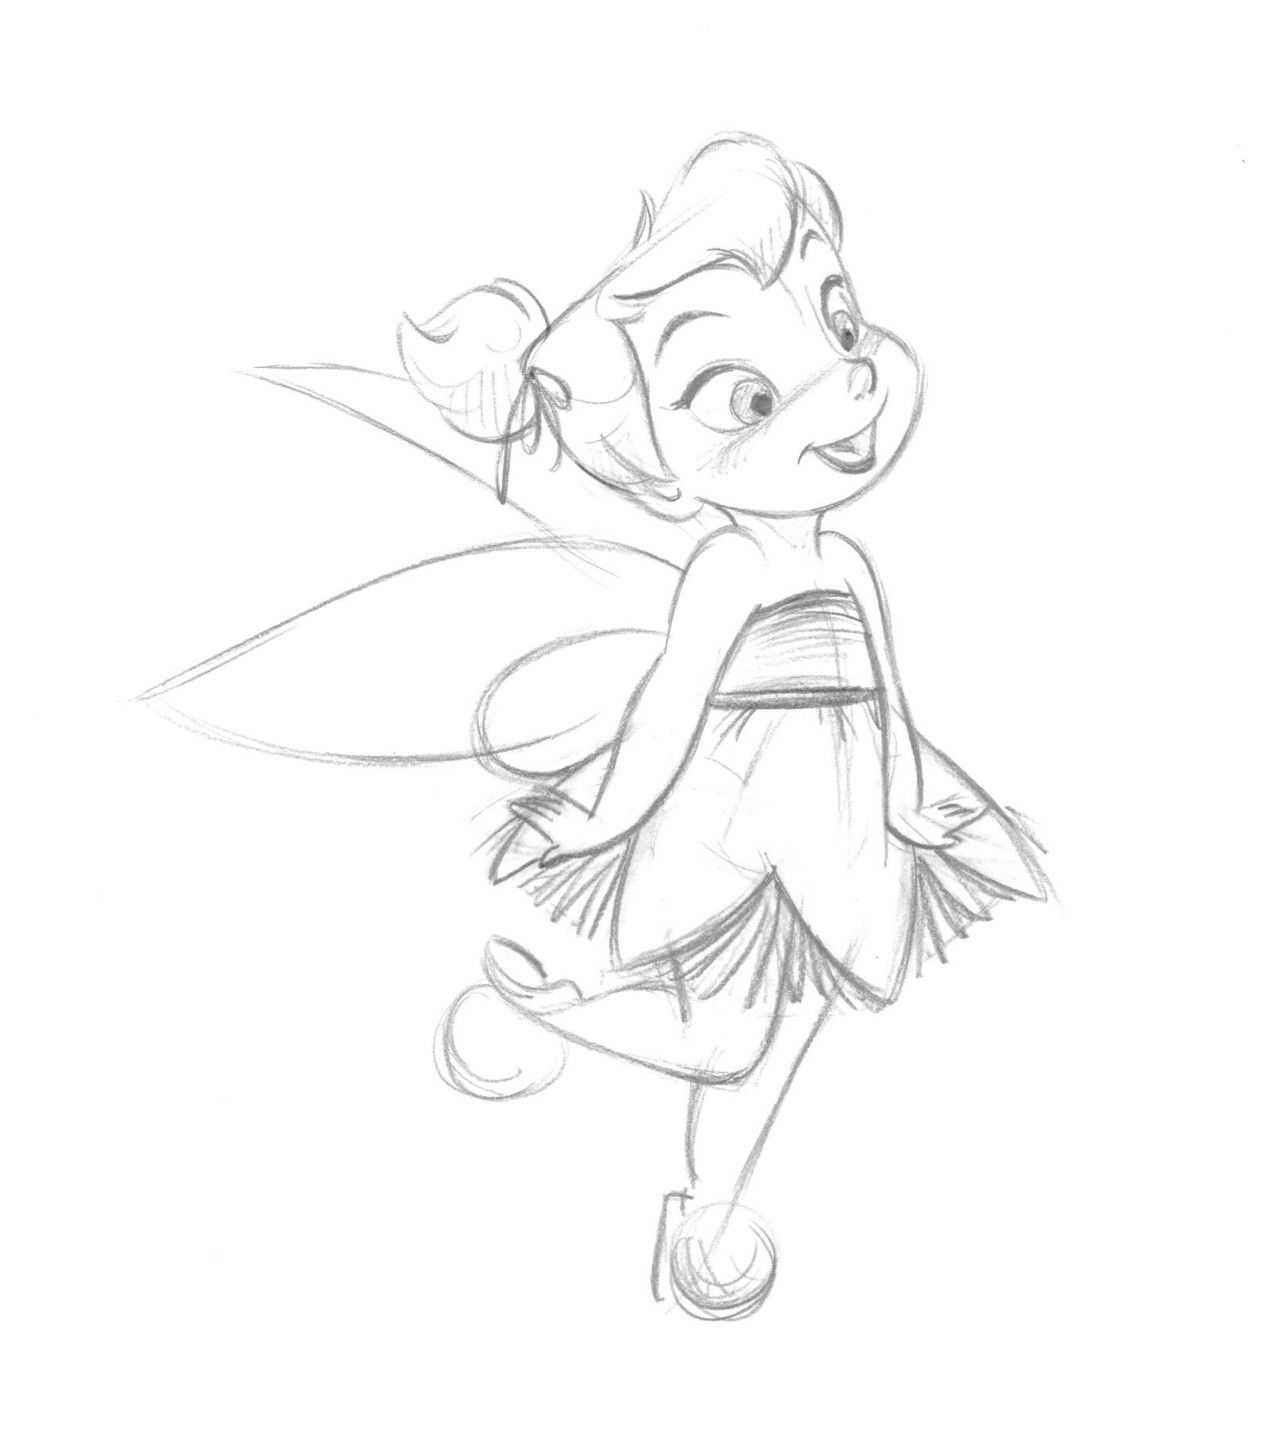 Uncategorized Tinkerbell Sketch Drawing steve thompson tattoos pinterest tinkerbell drawings and fairy concept art